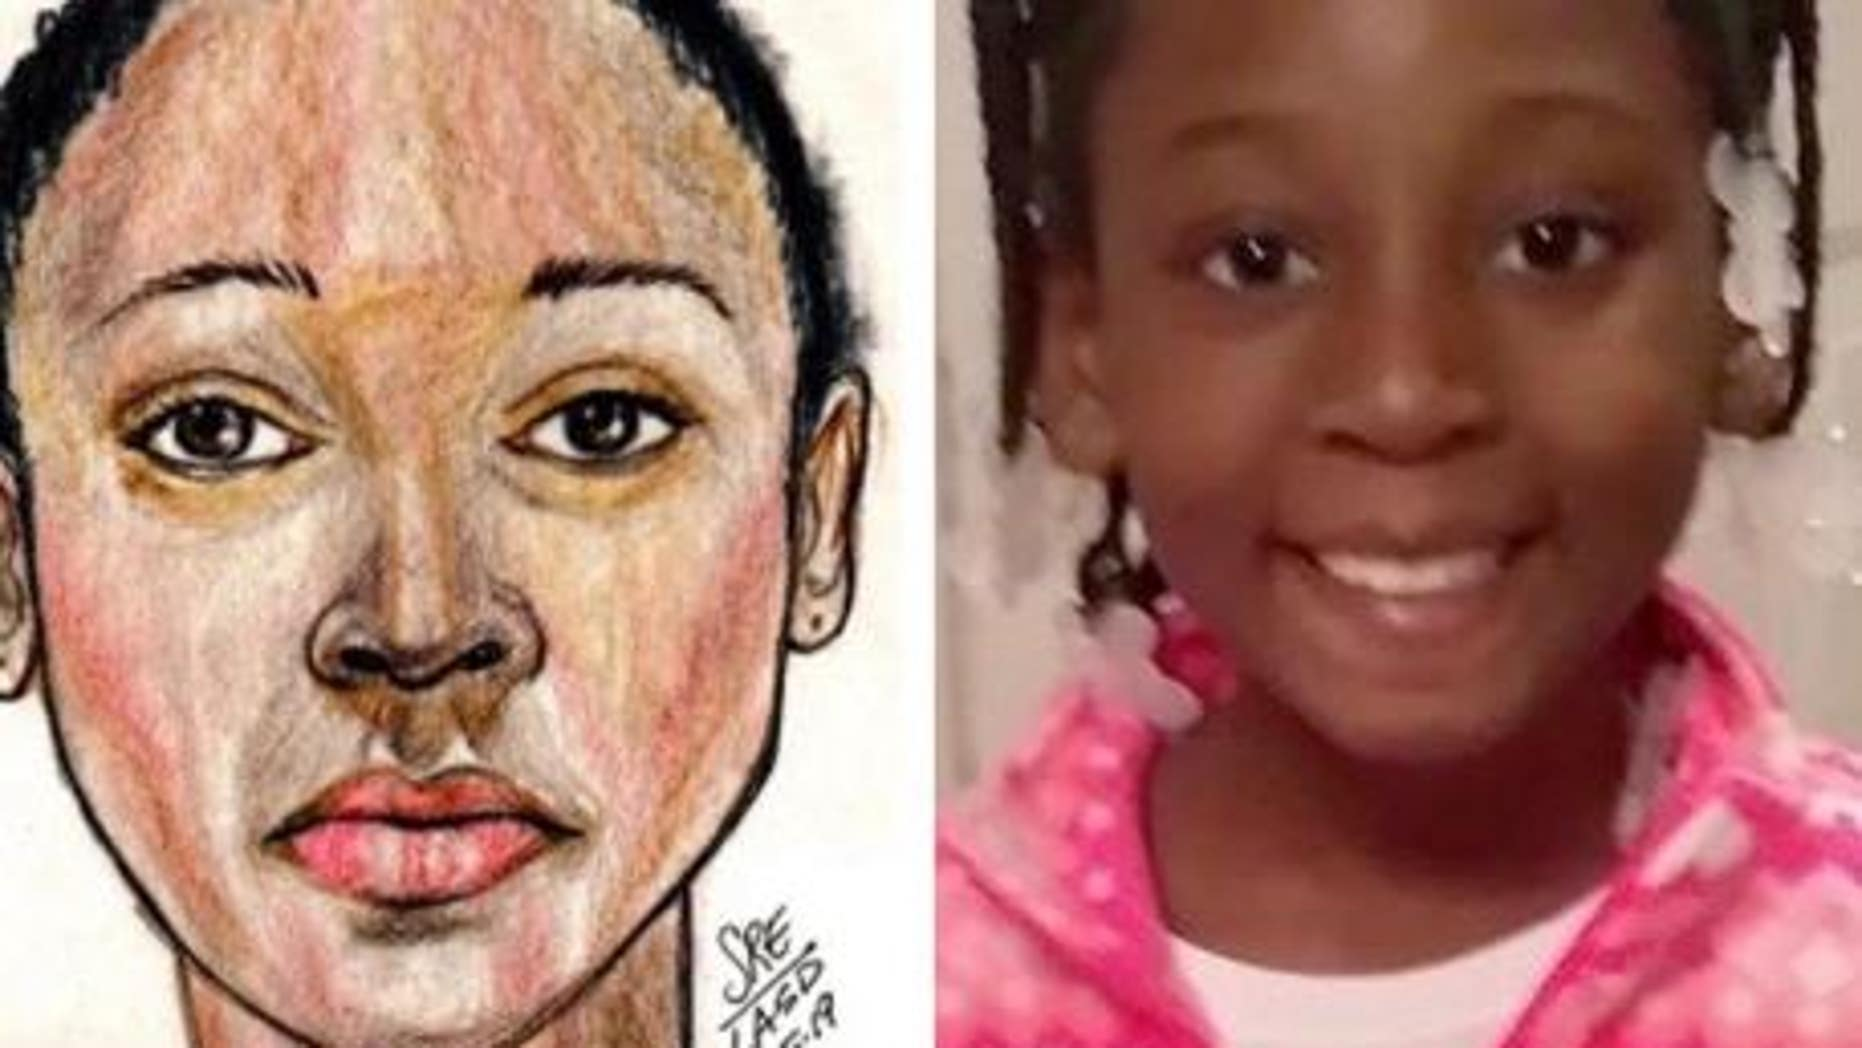 9-Year-Old Trinity Love Jones Identified as Child Found in Suitcase